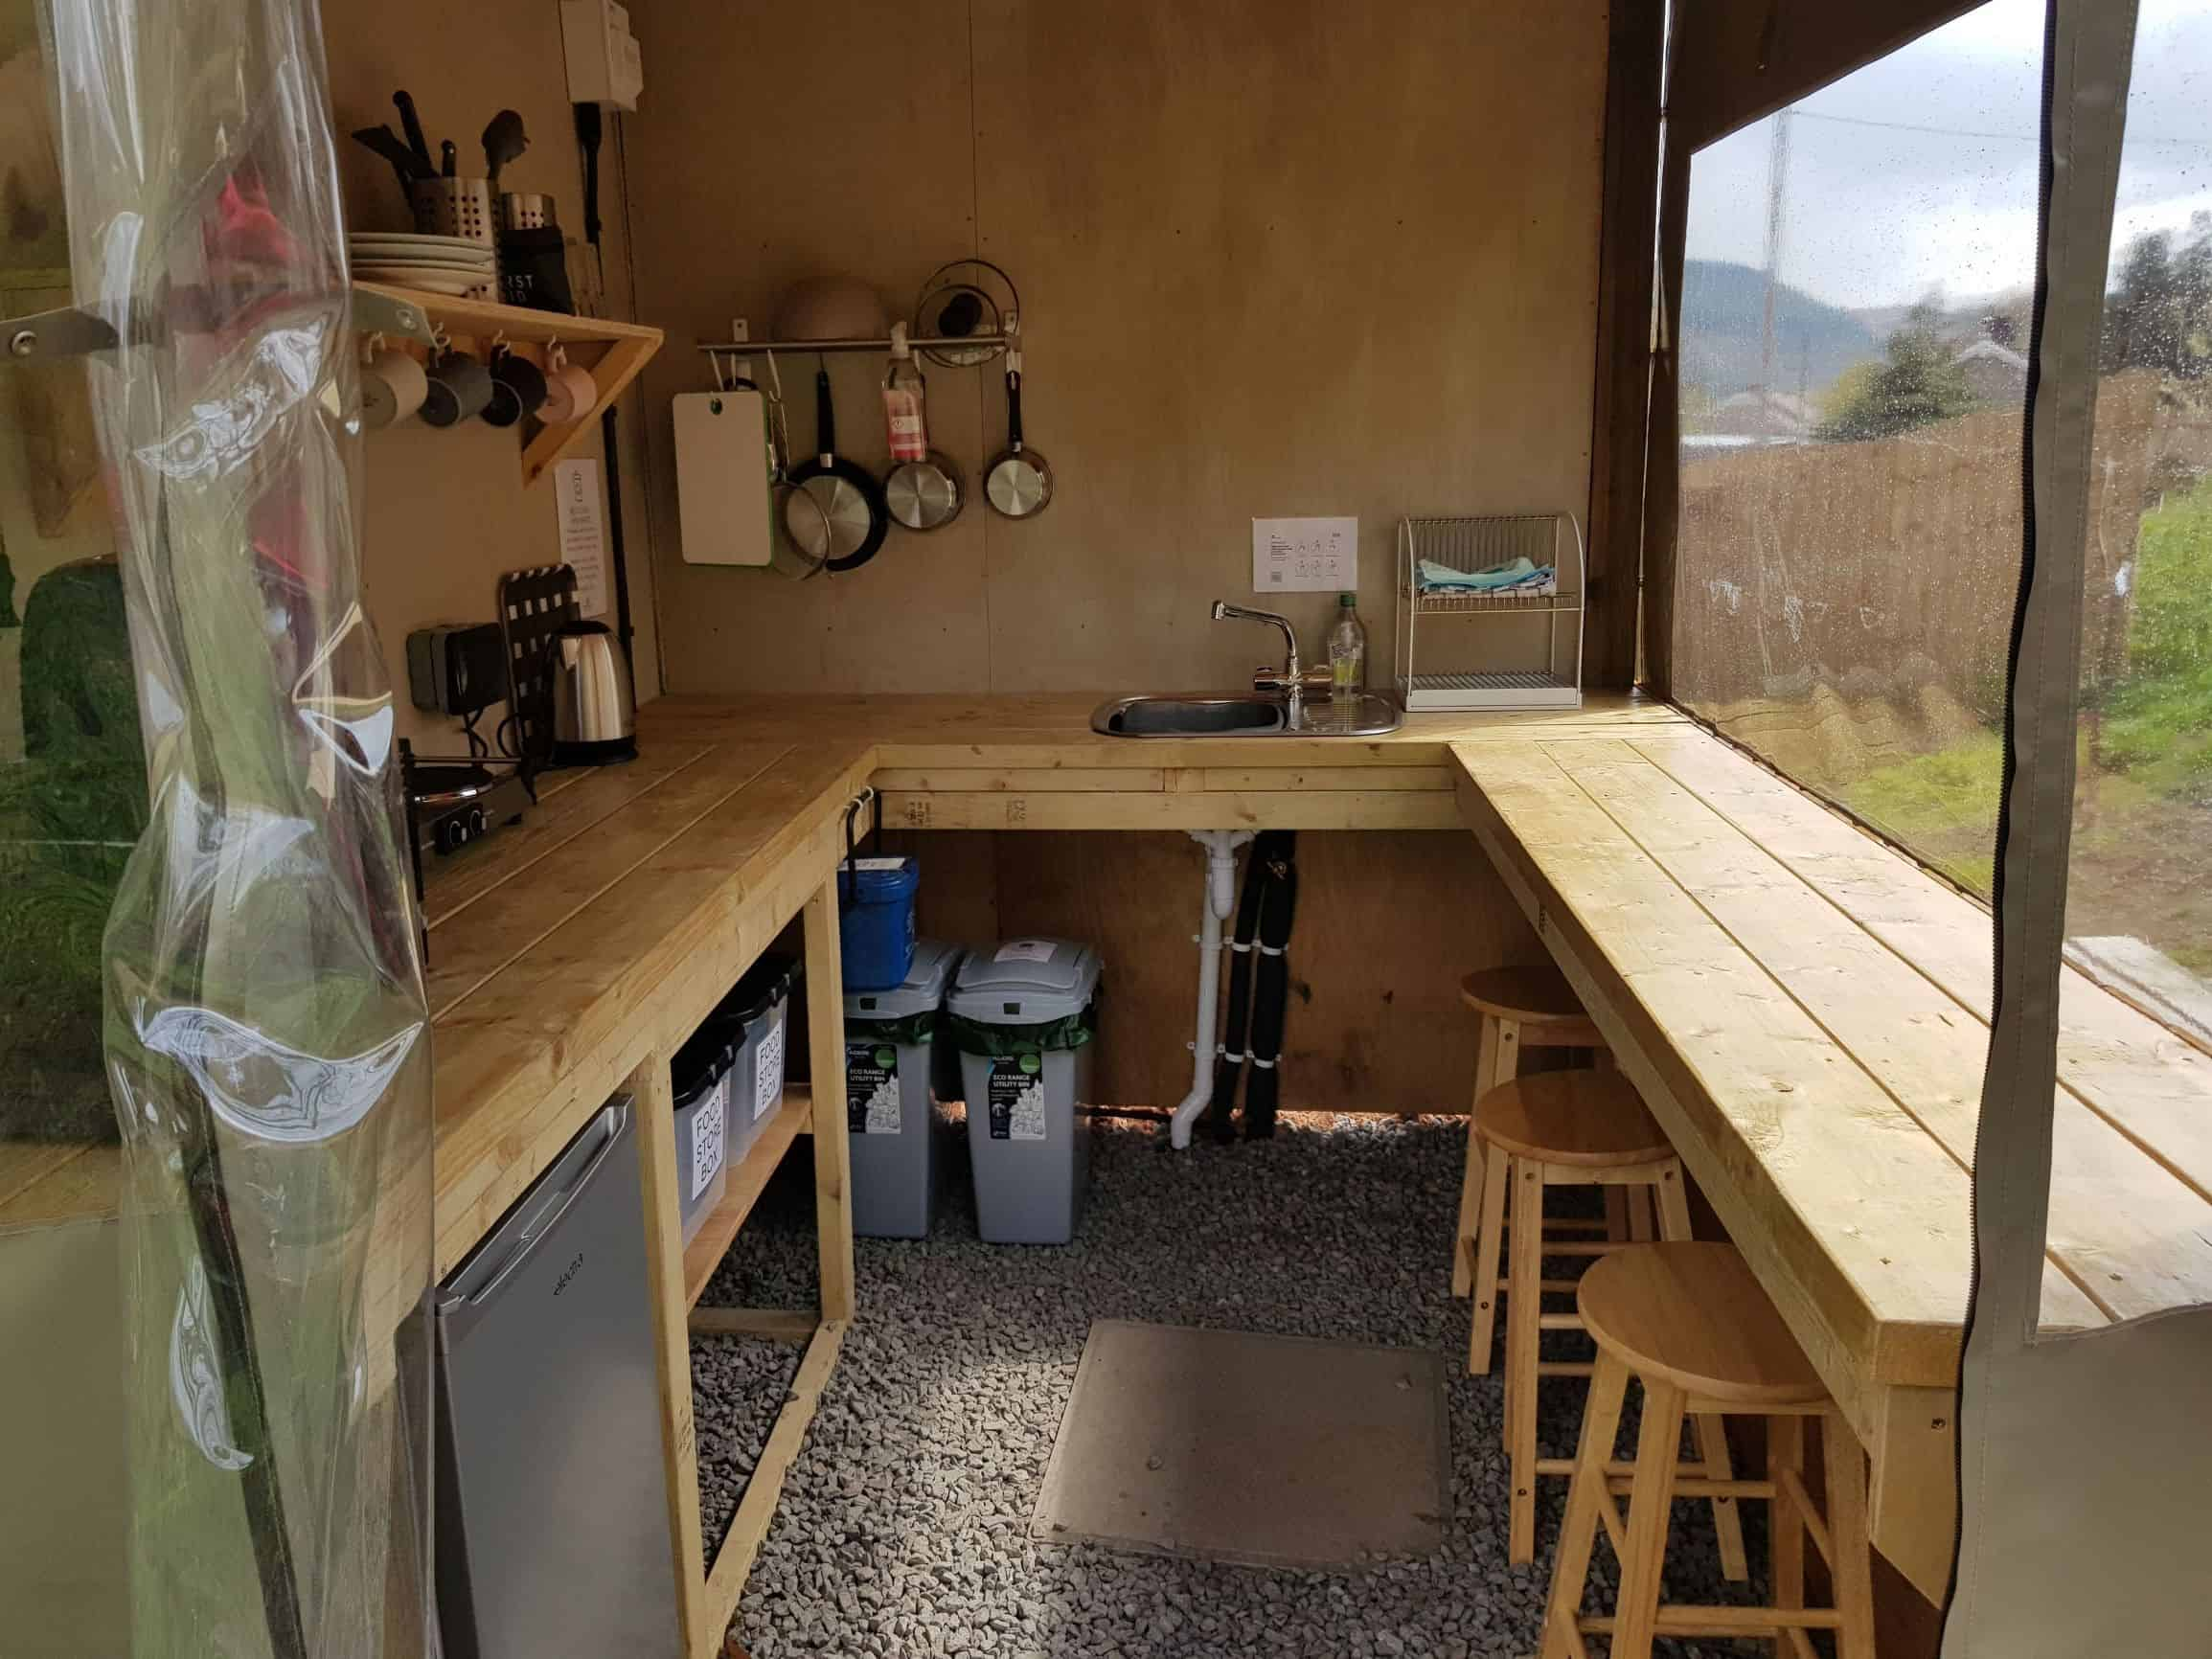 Camping kitchen with sink hob fridge microwave seating